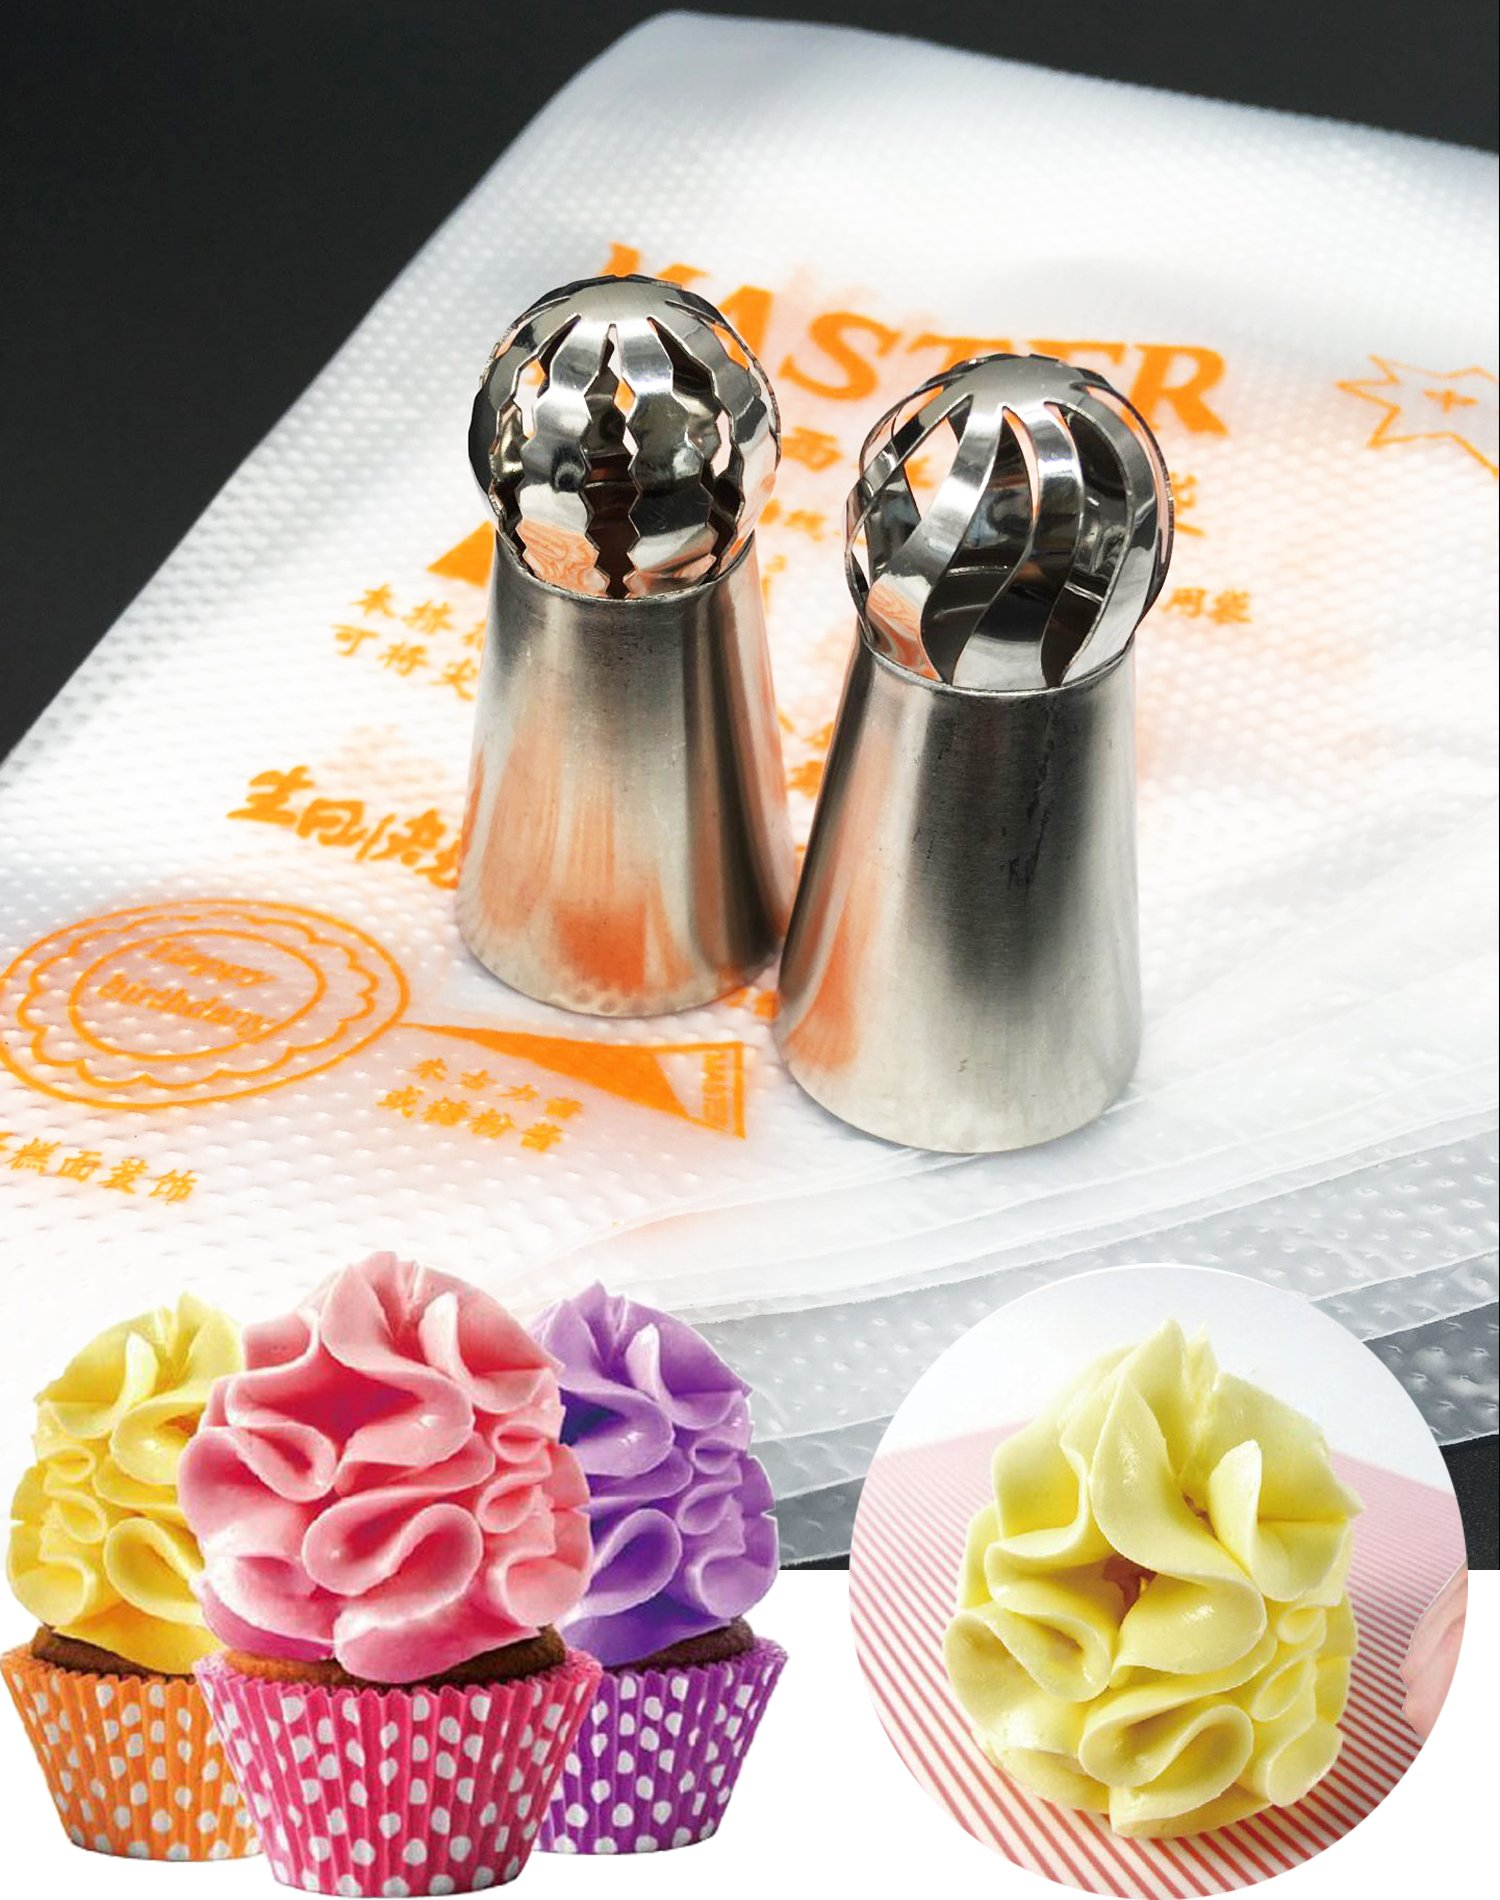 Ball Tips 12Pcs/set, KOOTIPS 2Pcs Sphere Ball Tips+ 10pcs Pastry Bag Russian Icing Piping Nozzles Tips Pastry Cake Fondant Cupcake